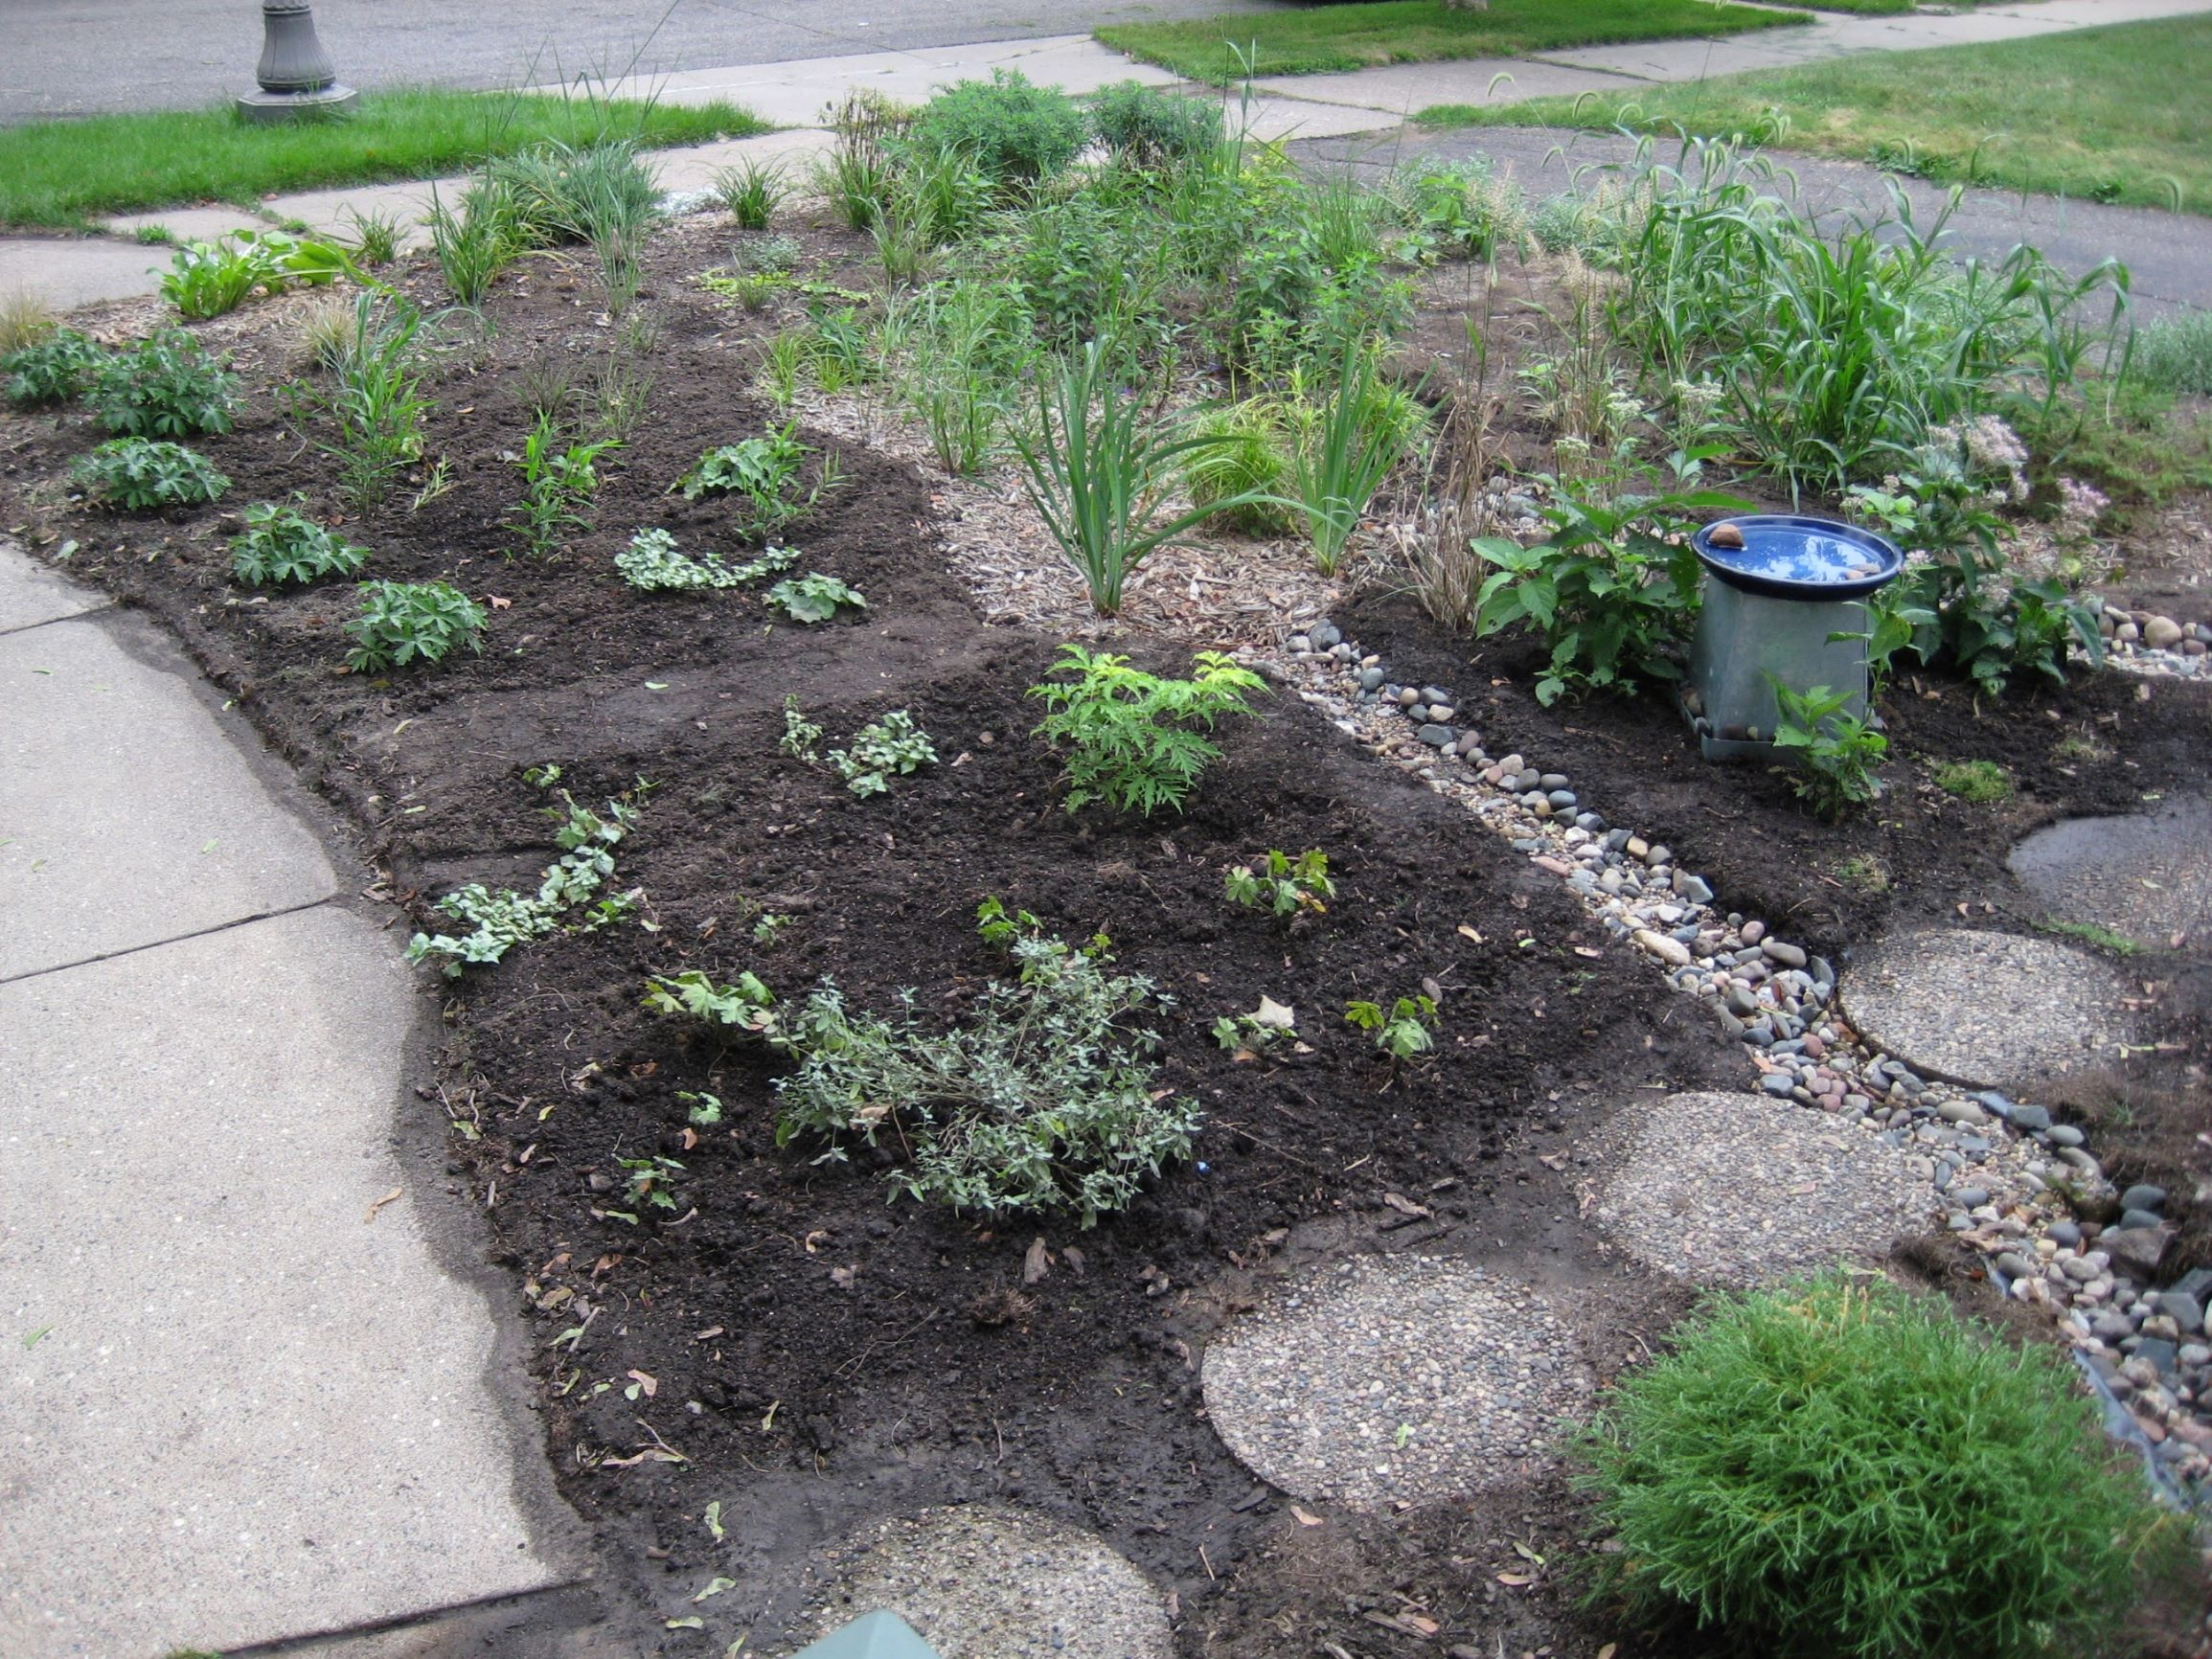 newly-planted garden